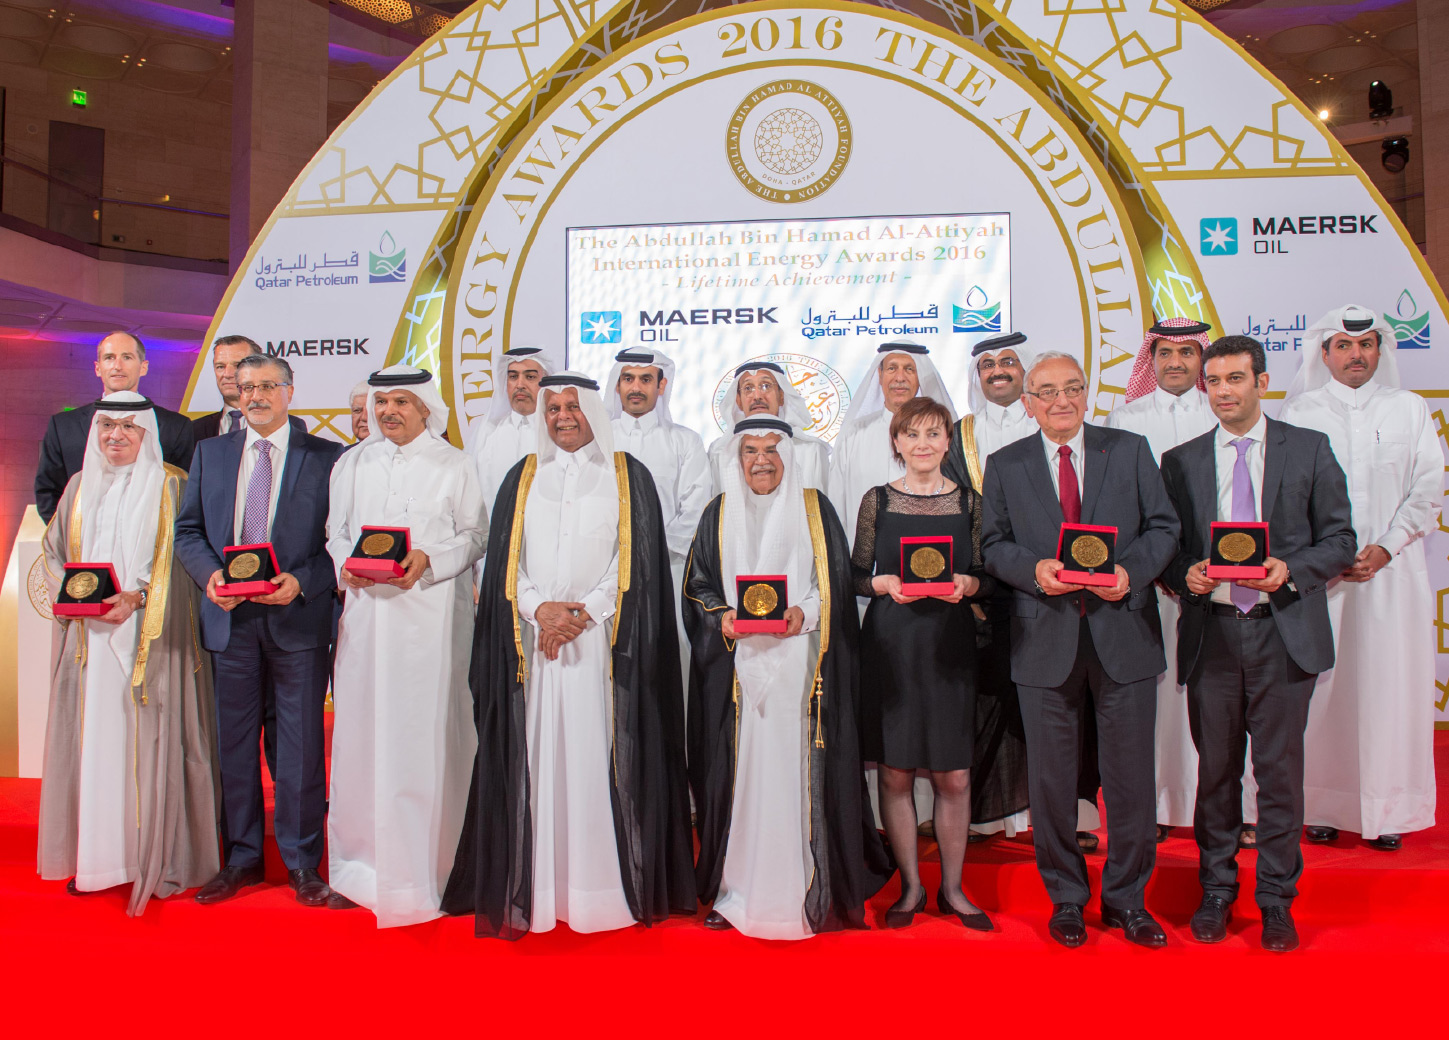 The 2016 Abdullah Bin Hamad Al-Attiyah International Energy Awards